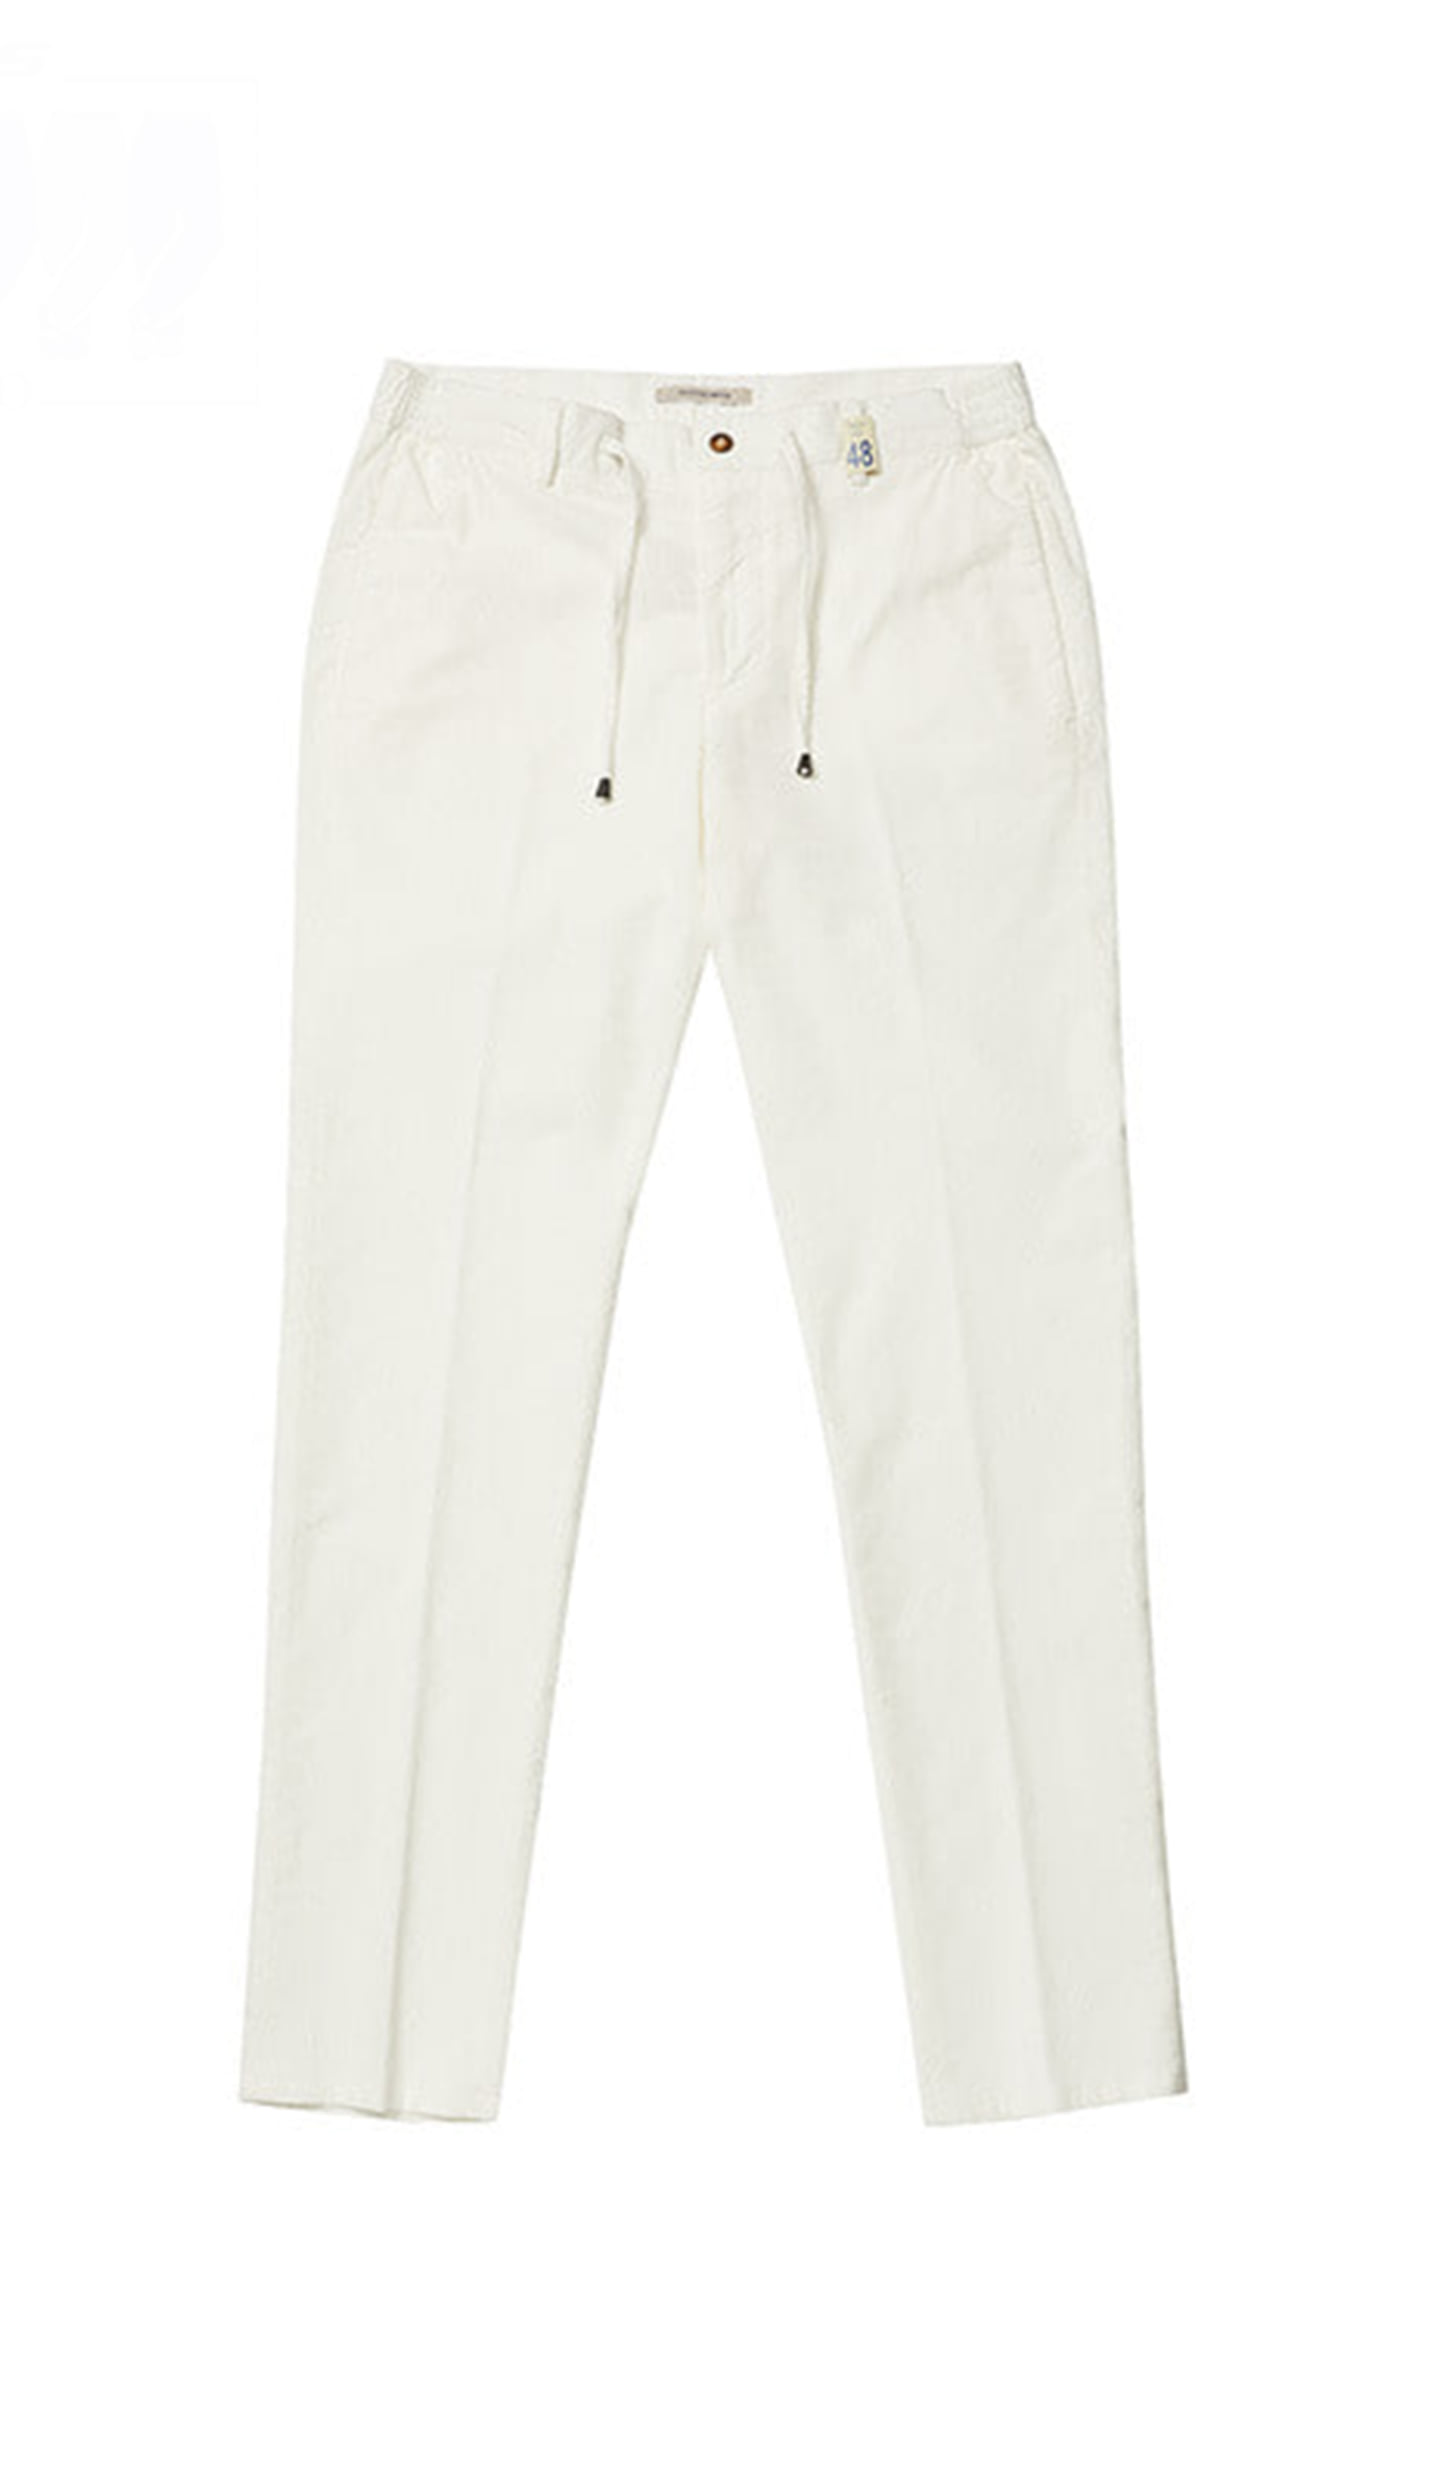 TAILORABLE X Giab's ARCHIVIO TROUSERS CO